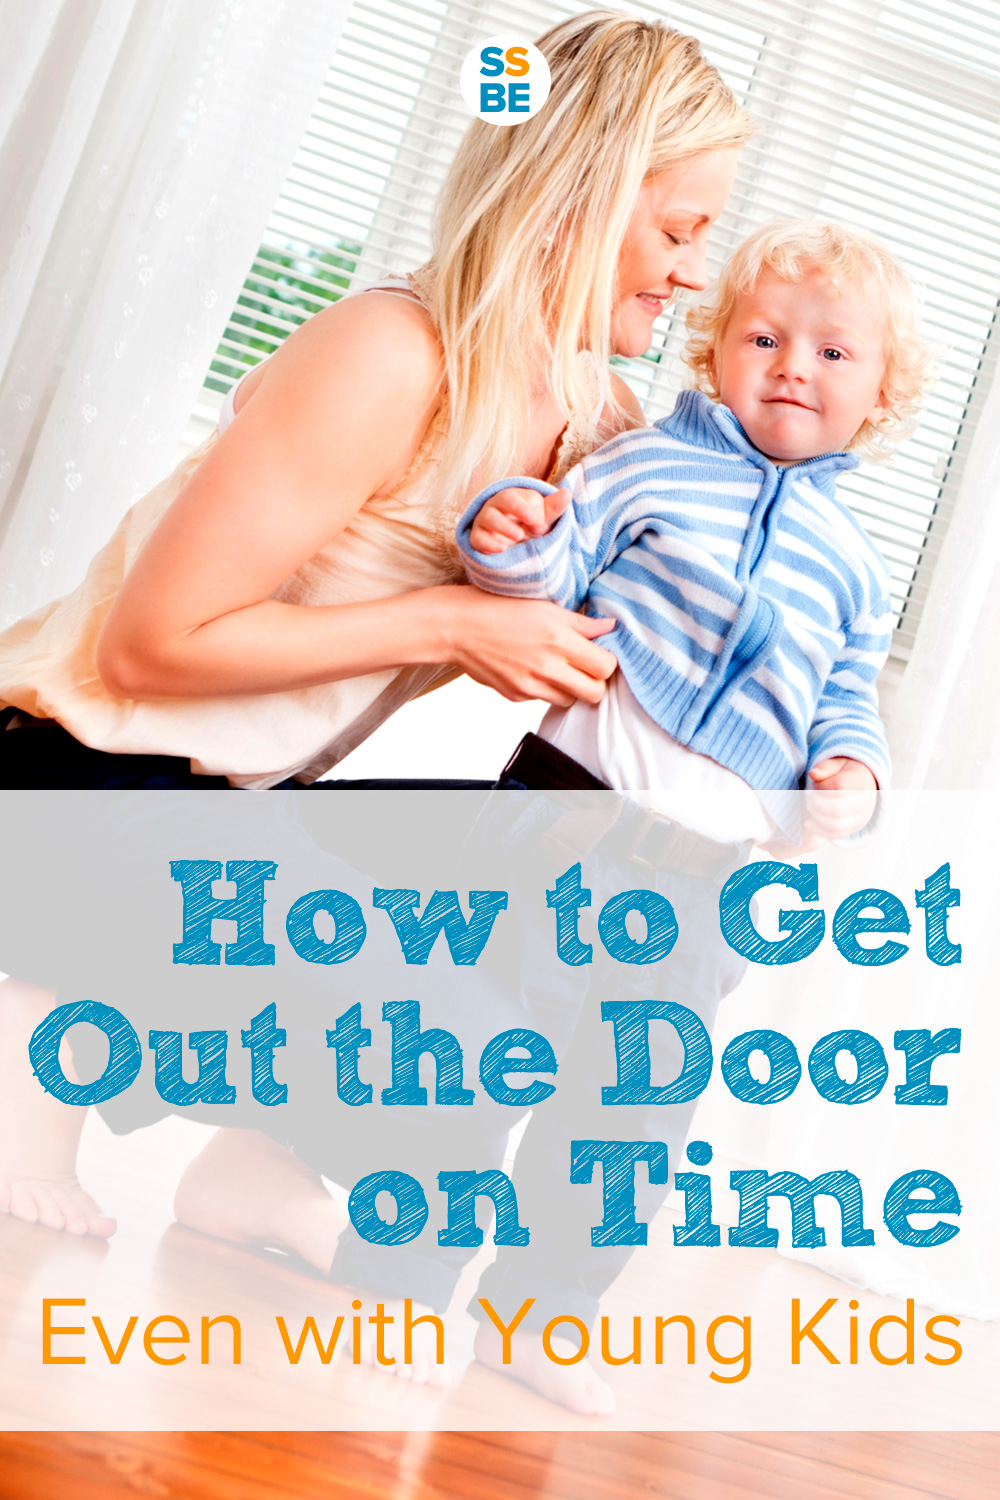 How to Get Out the Door on Time (Even with Young Kids)